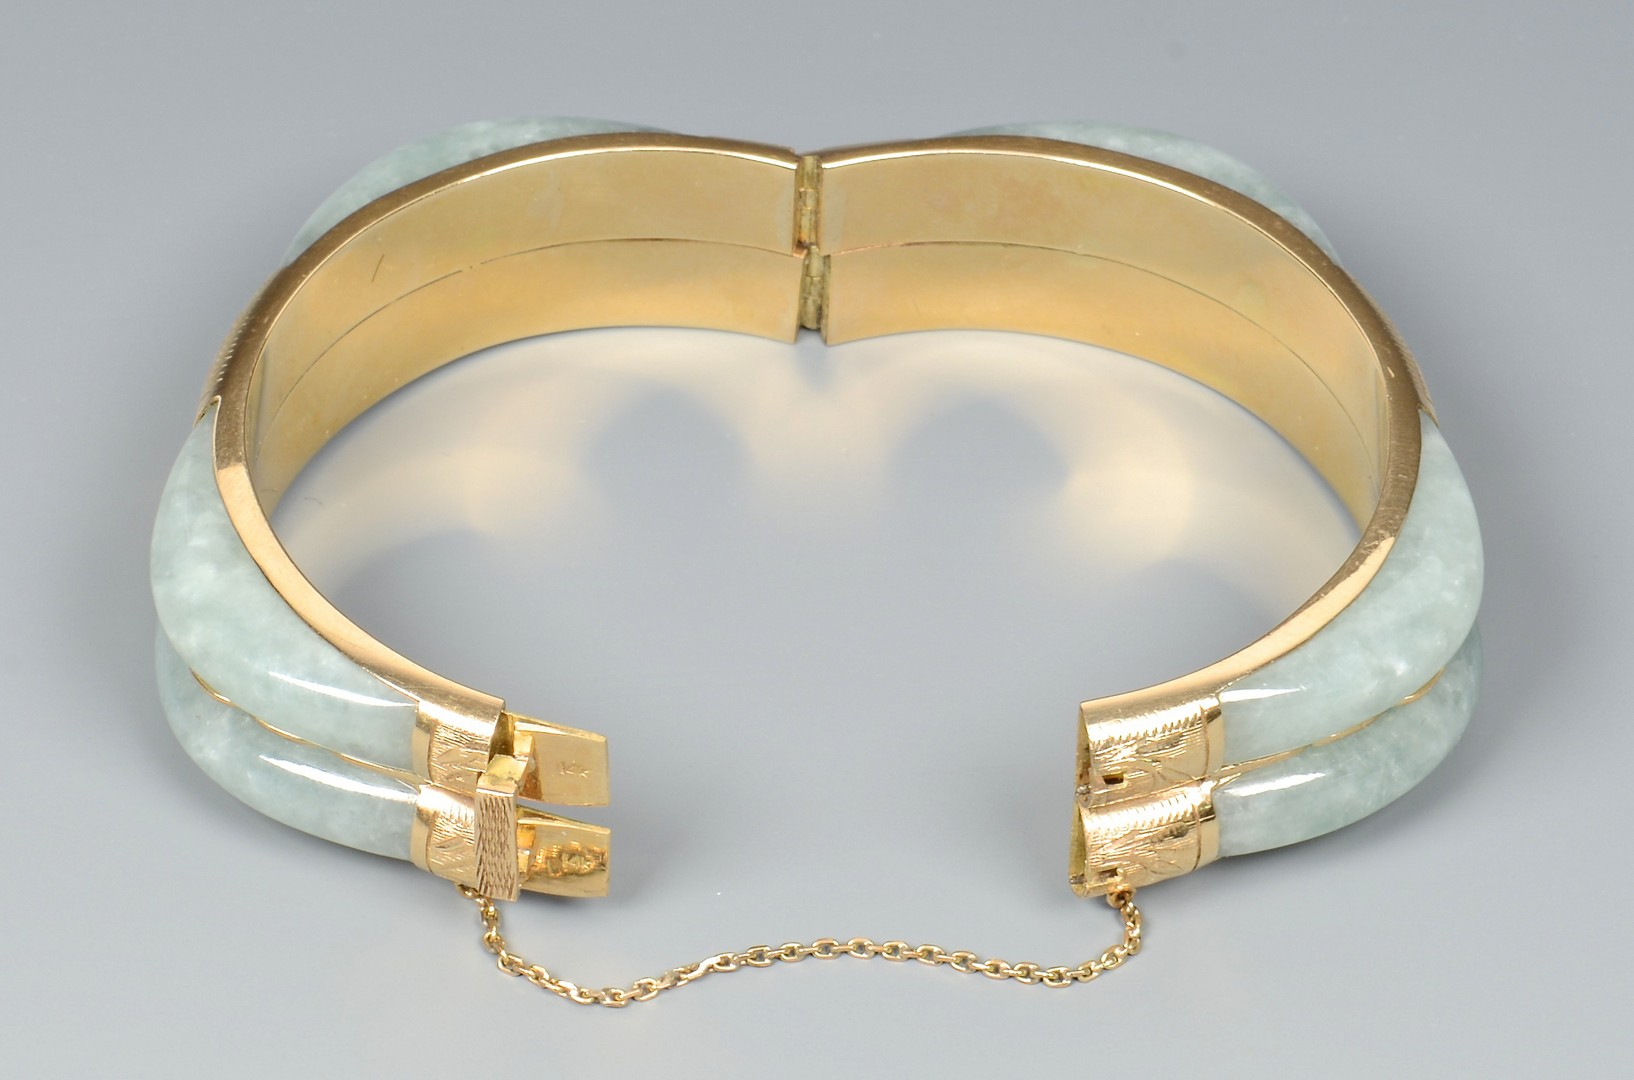 Lot 3832375: 14K Jade Double Bangle Bracelet